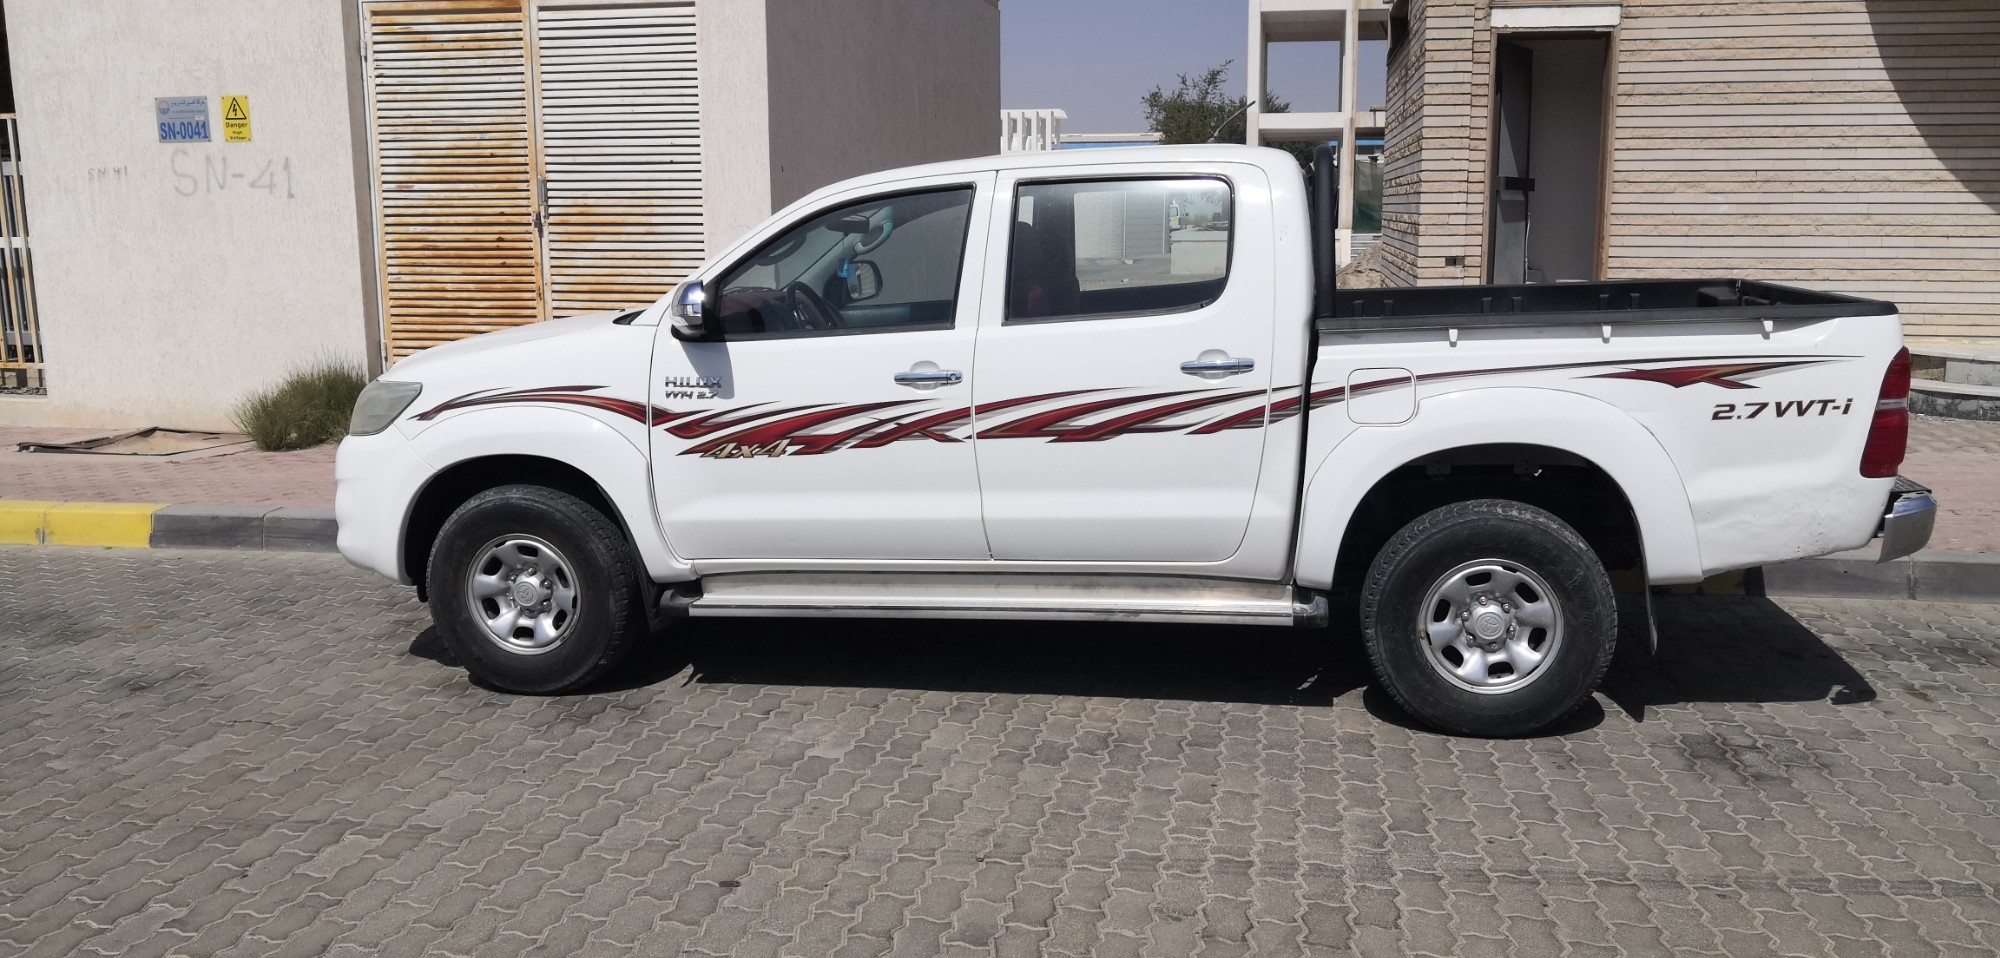 Used Toyota Hilux 25.25 Double Cab 25x25 A/T Top 250125 (982582525